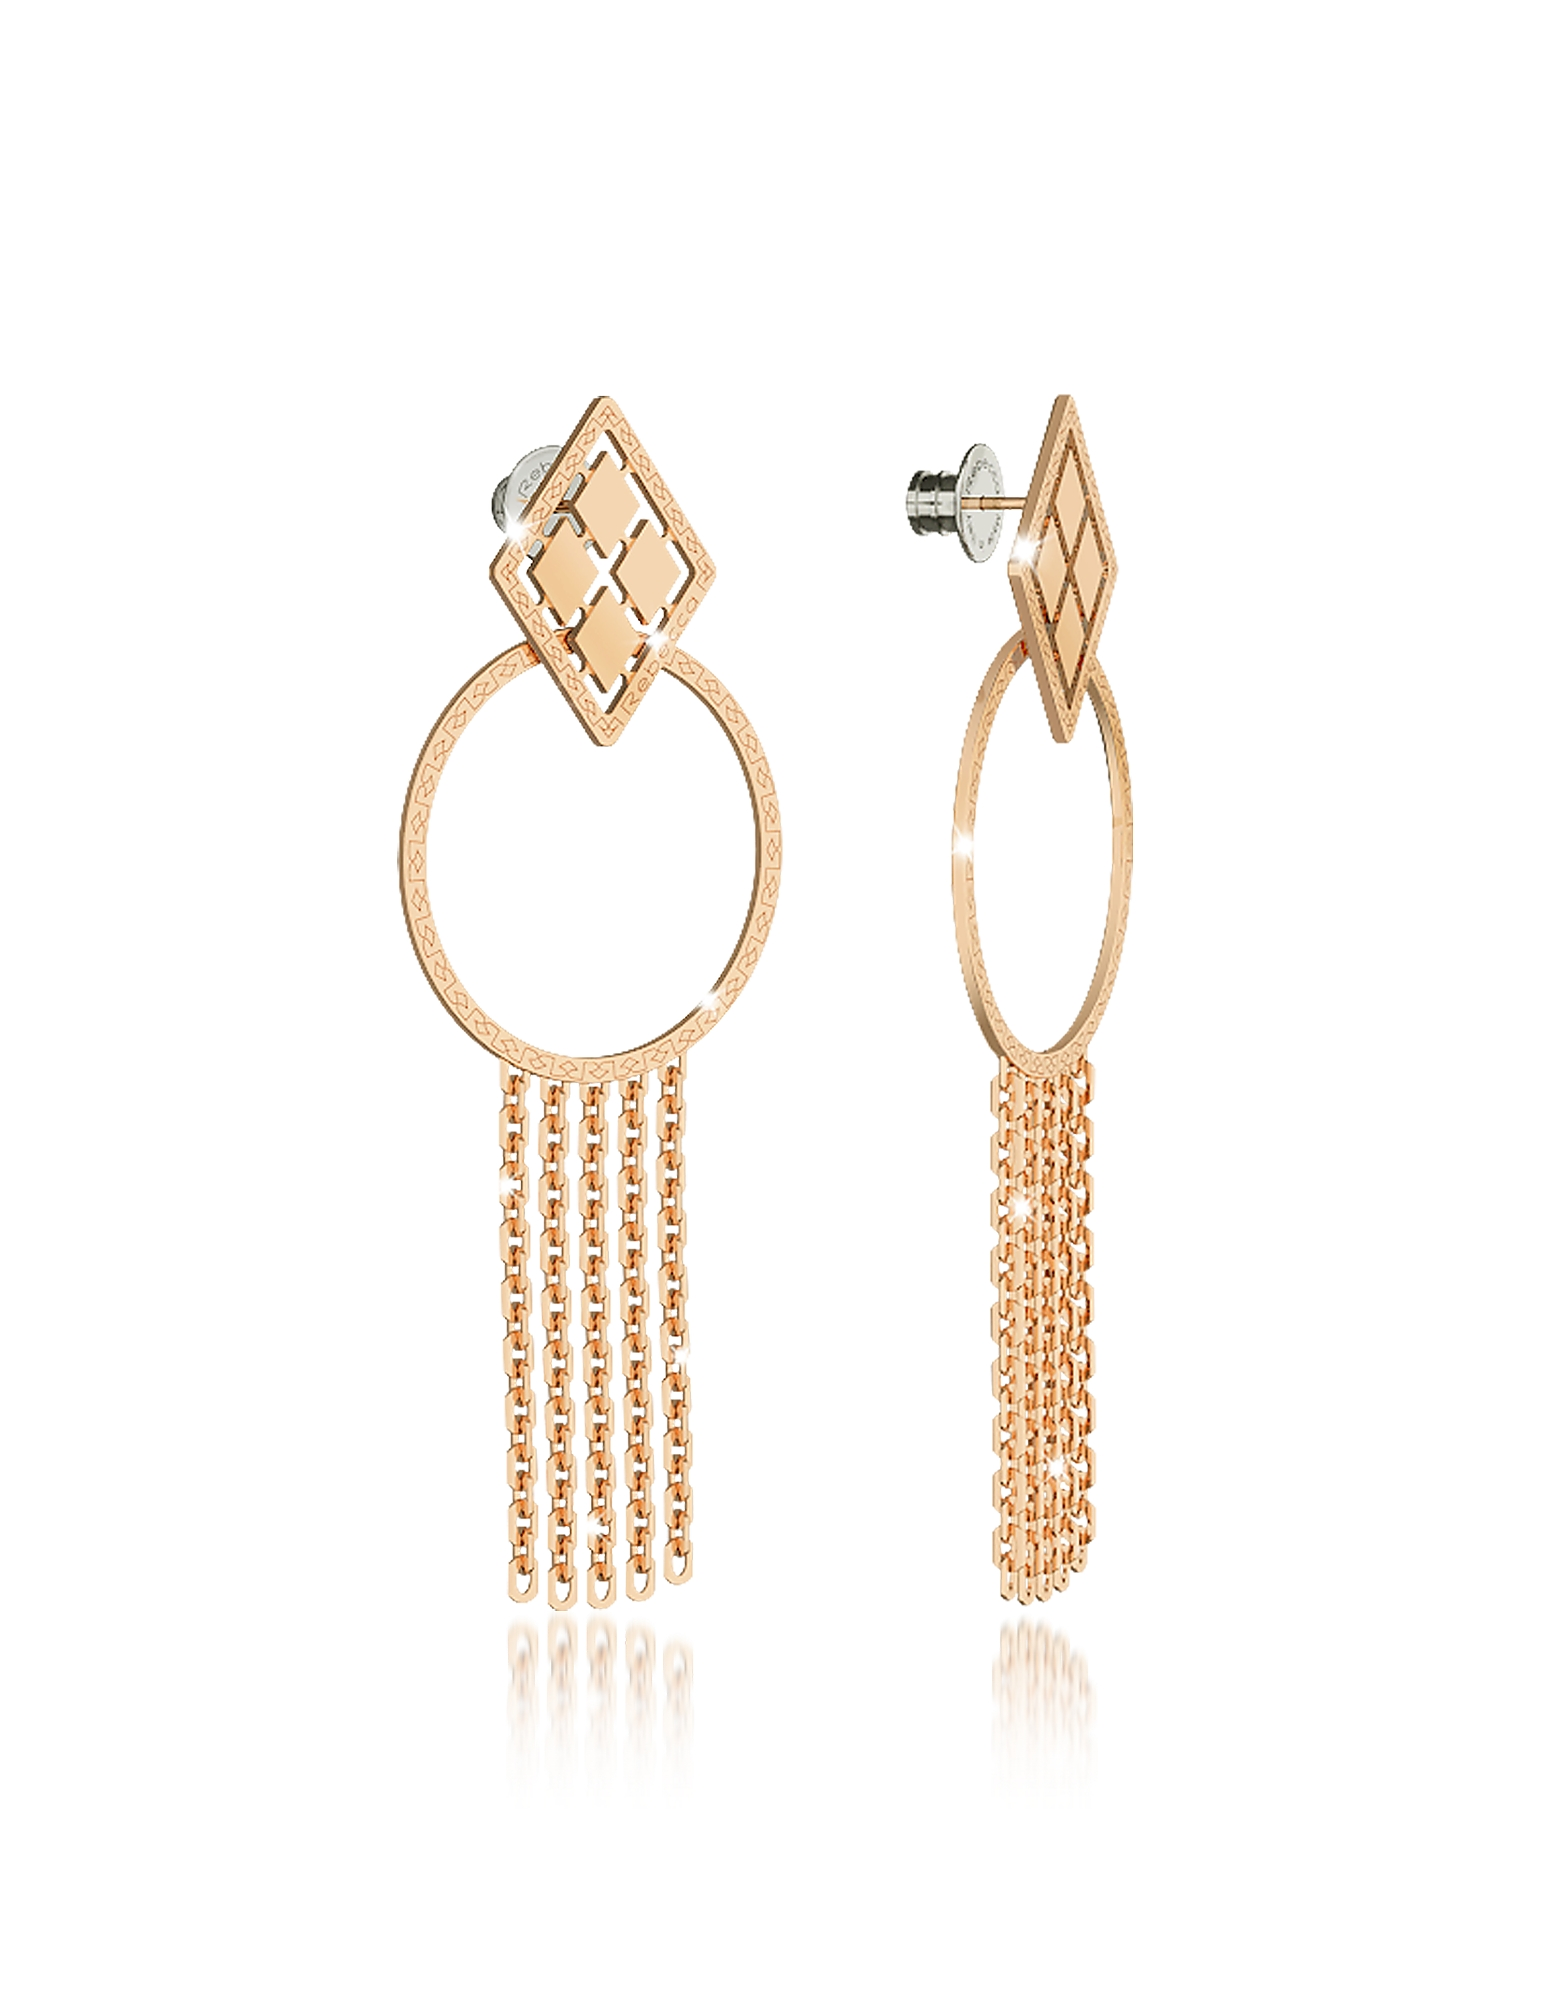 Rebecca Earrings, Melrose Yellow Gold Over Bronze Drop Hoop Earrings w/Chain Fringes